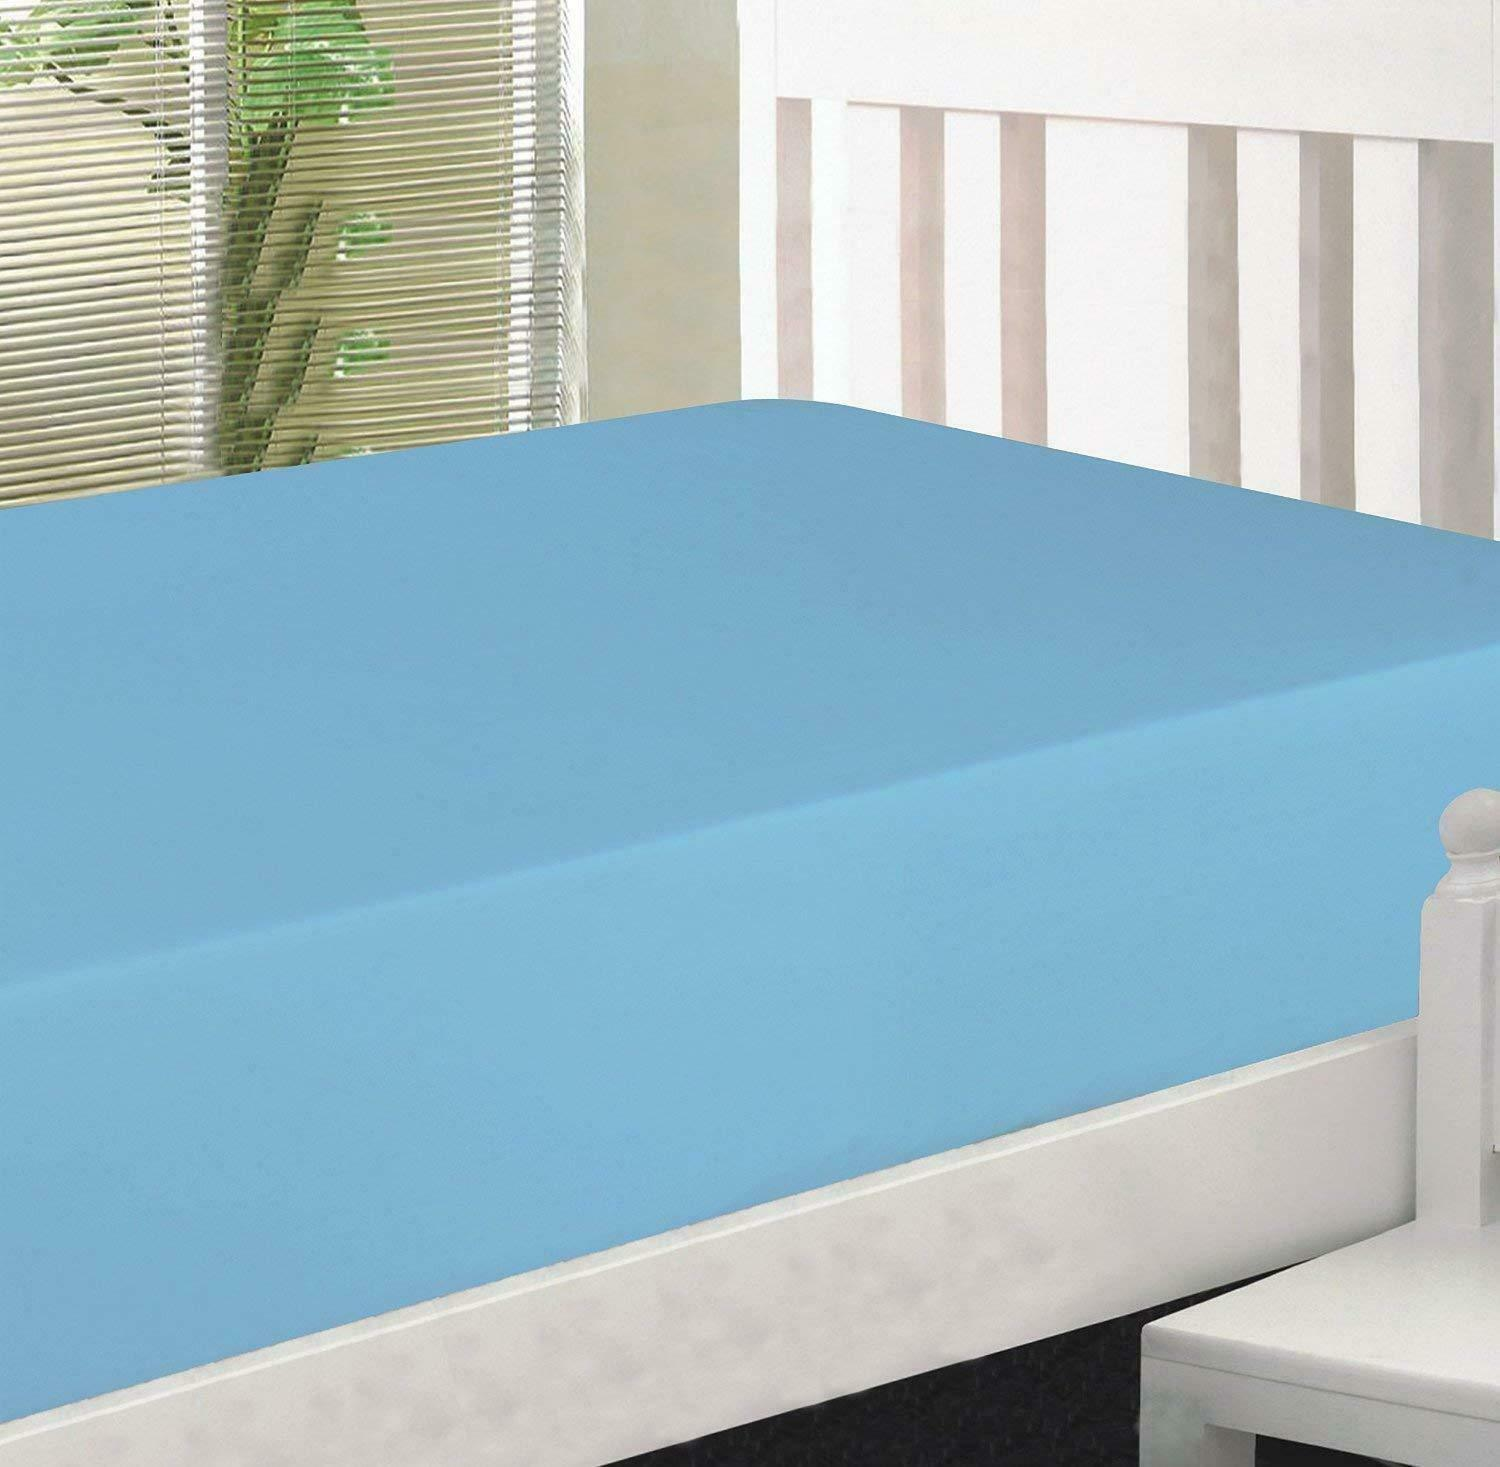 FittedSheet 15 Deep Pkt Elastic All Around FullXL 100%Cotton 600 TC bluee Solid